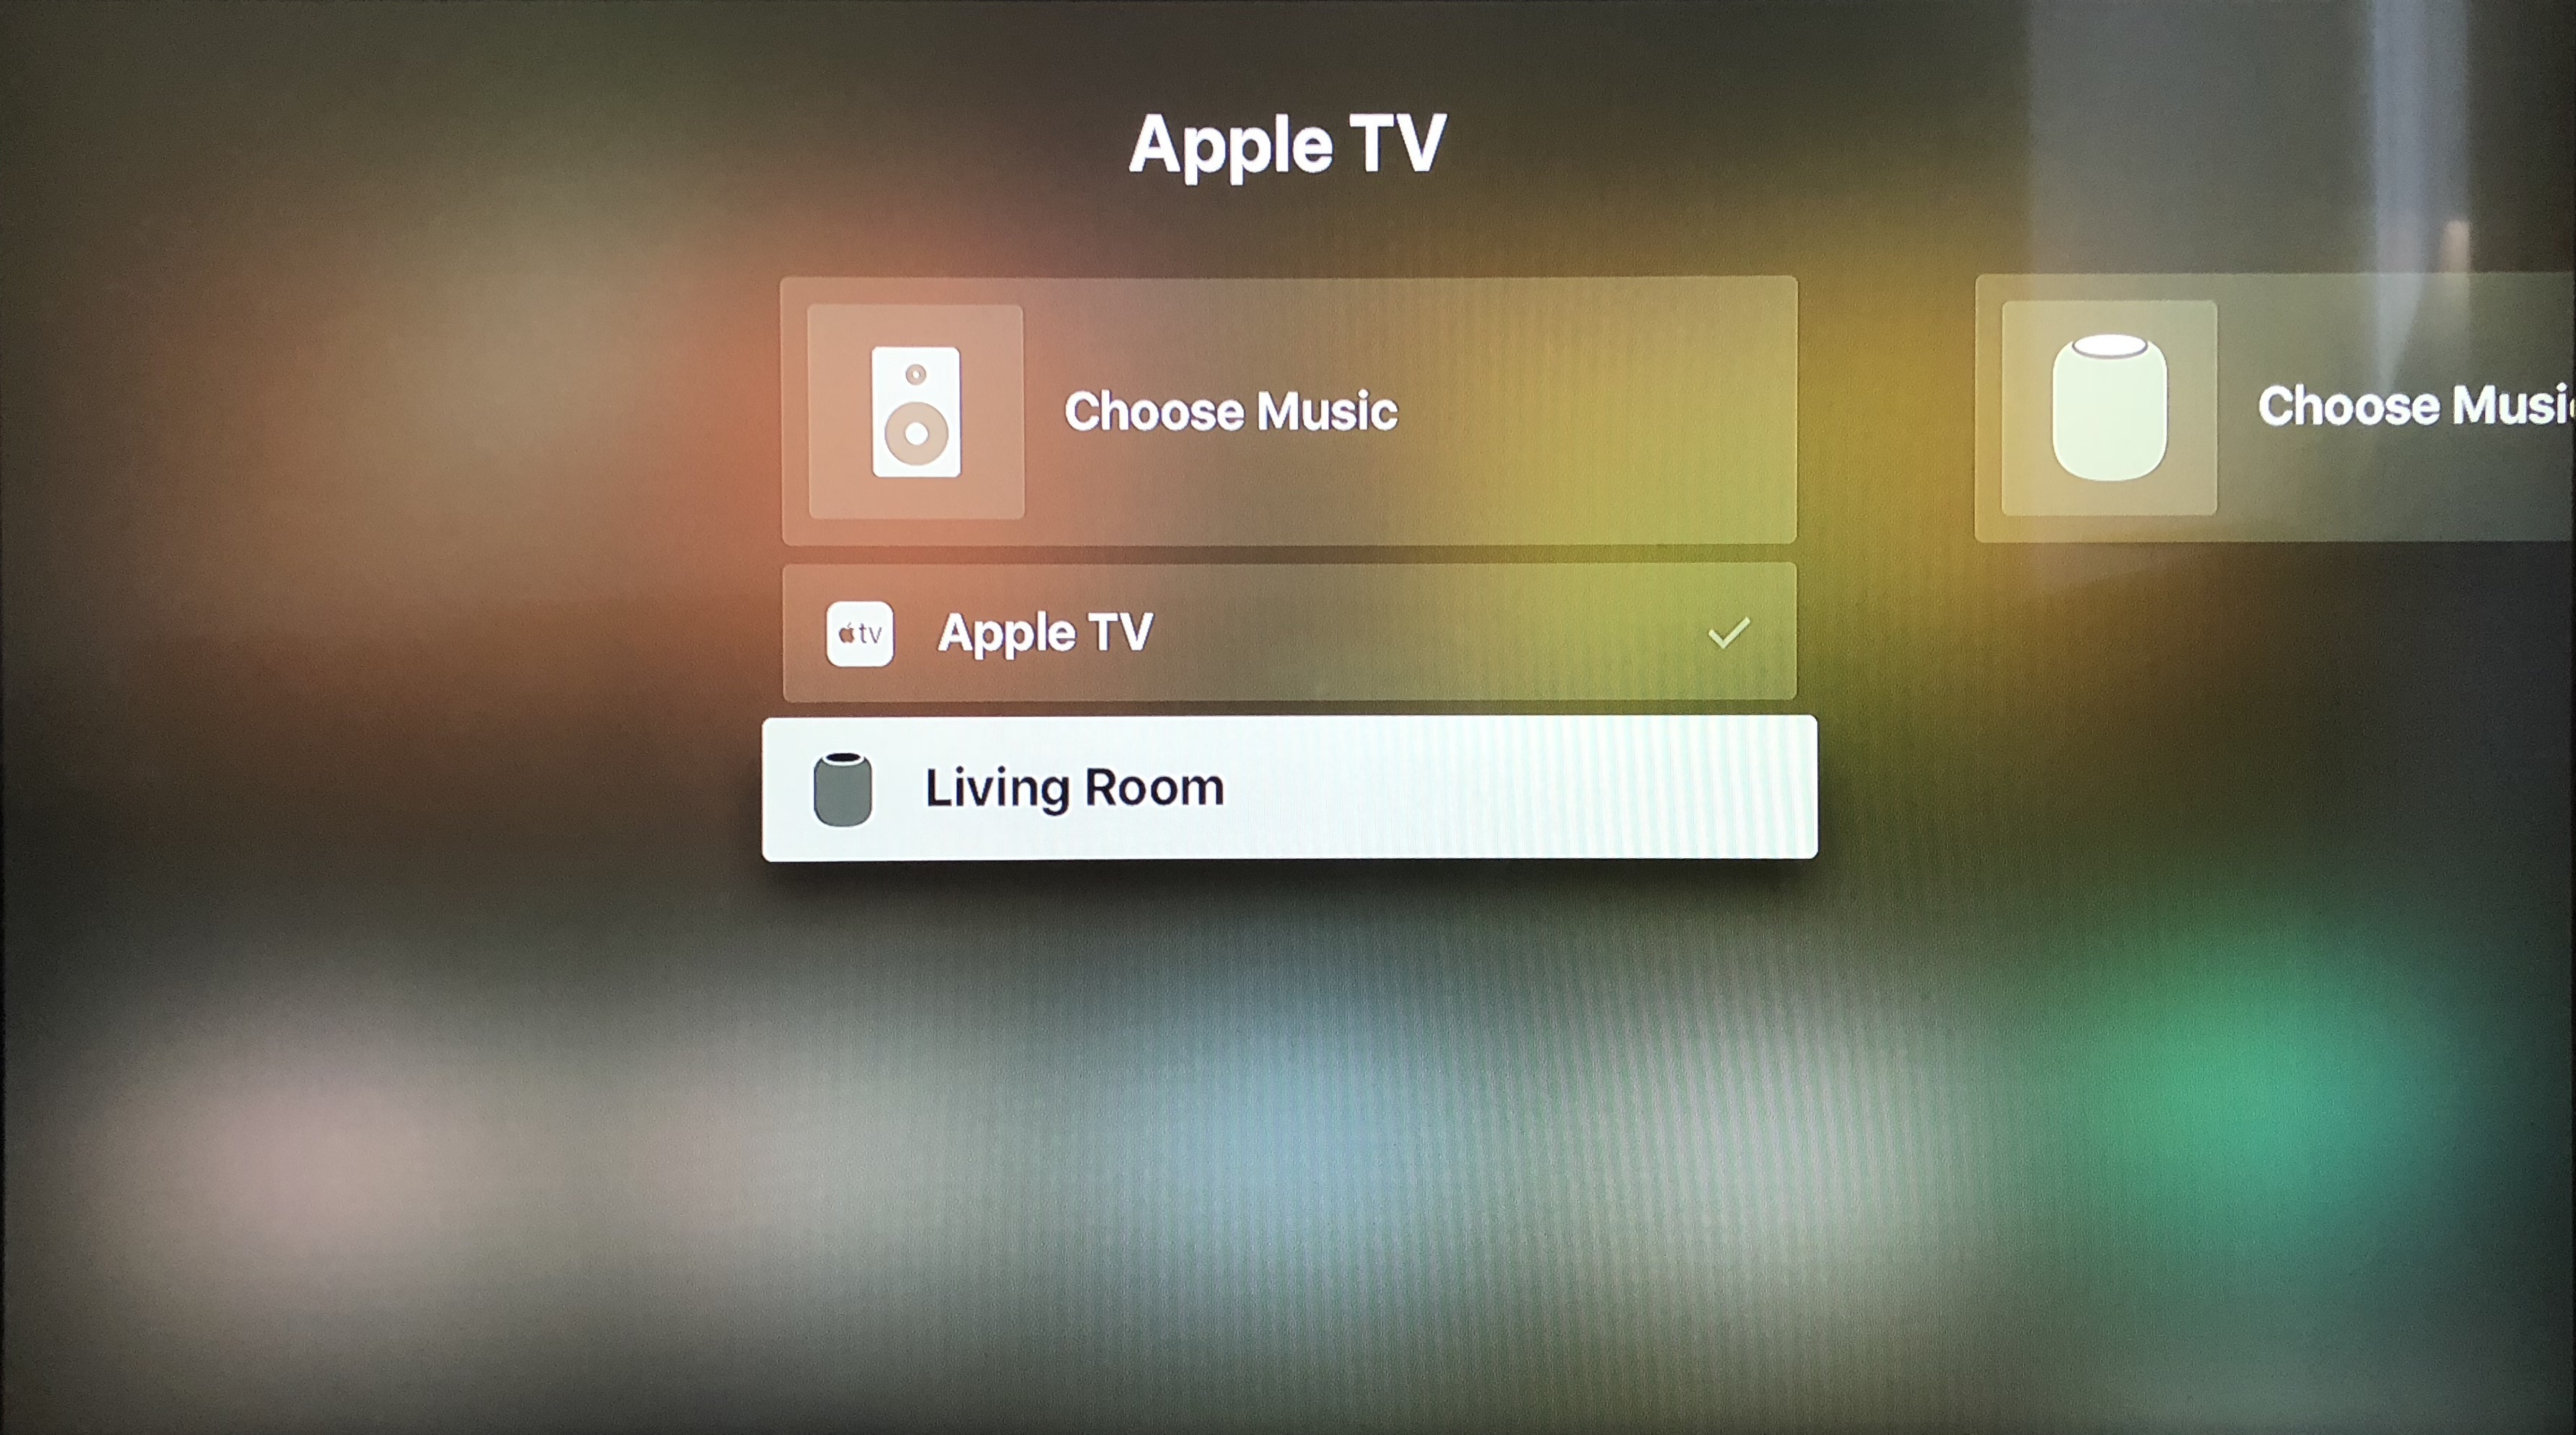 Play Apple TV sound on HomePod